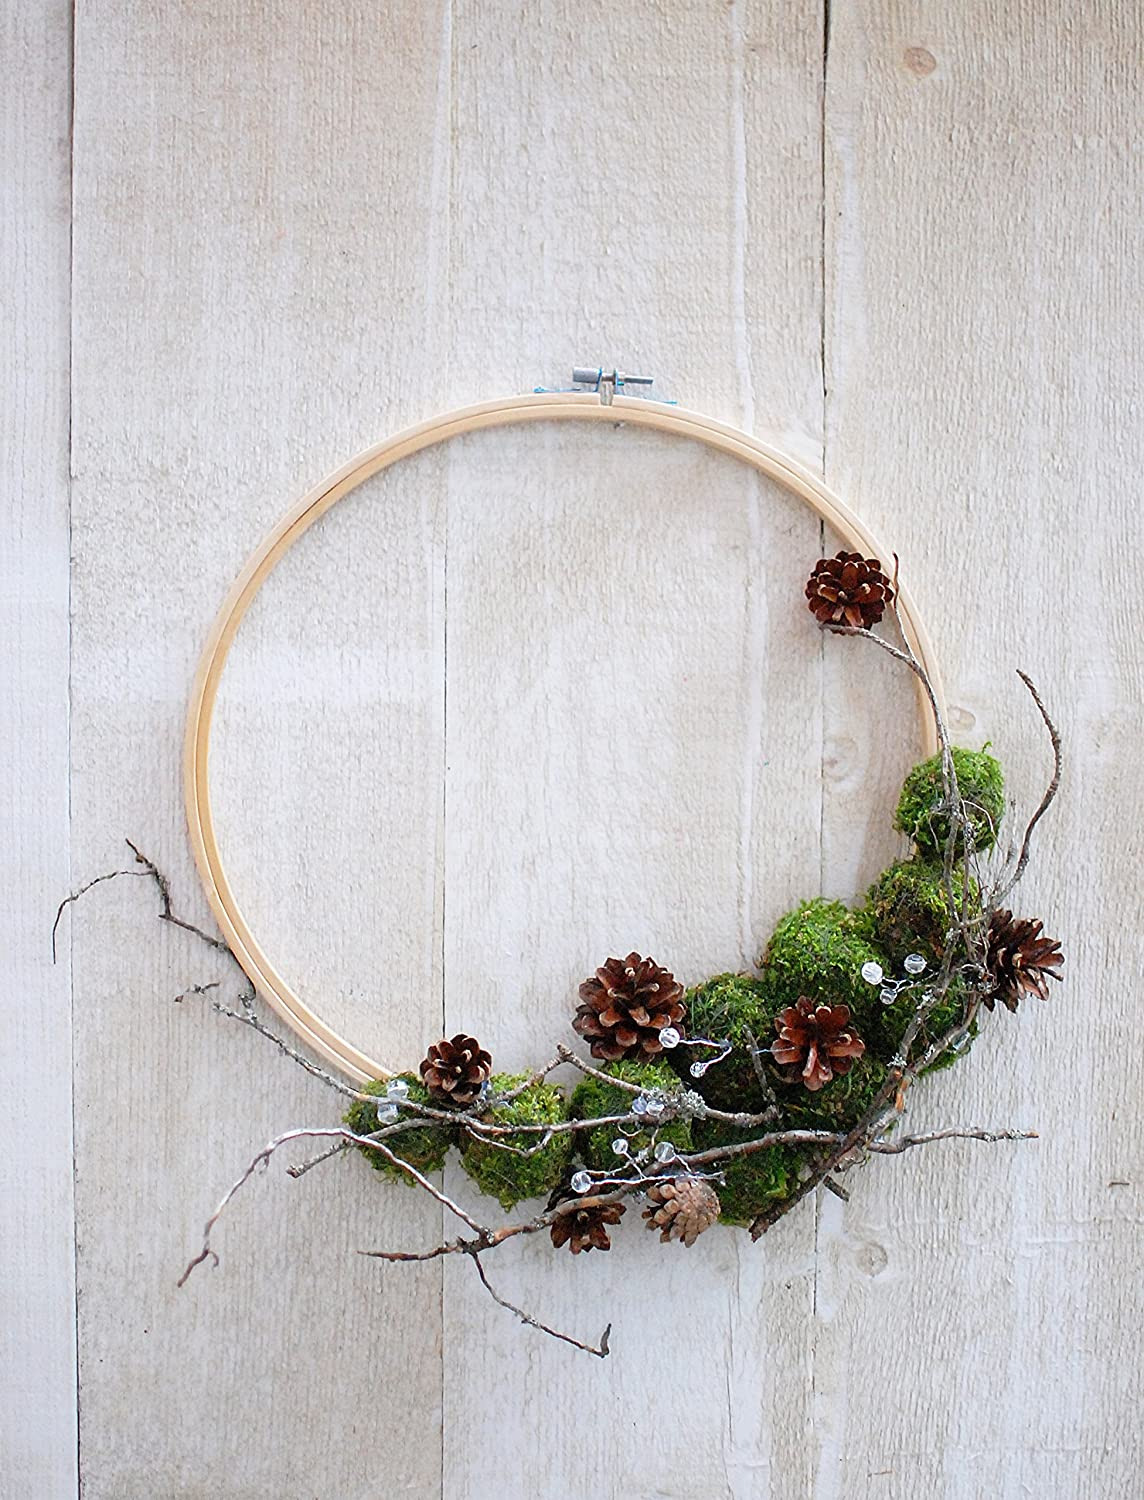 Christmas Embroidery Hoop Wreath.Natural Christmas Hoop Wreath Moss Wreath Embroidery